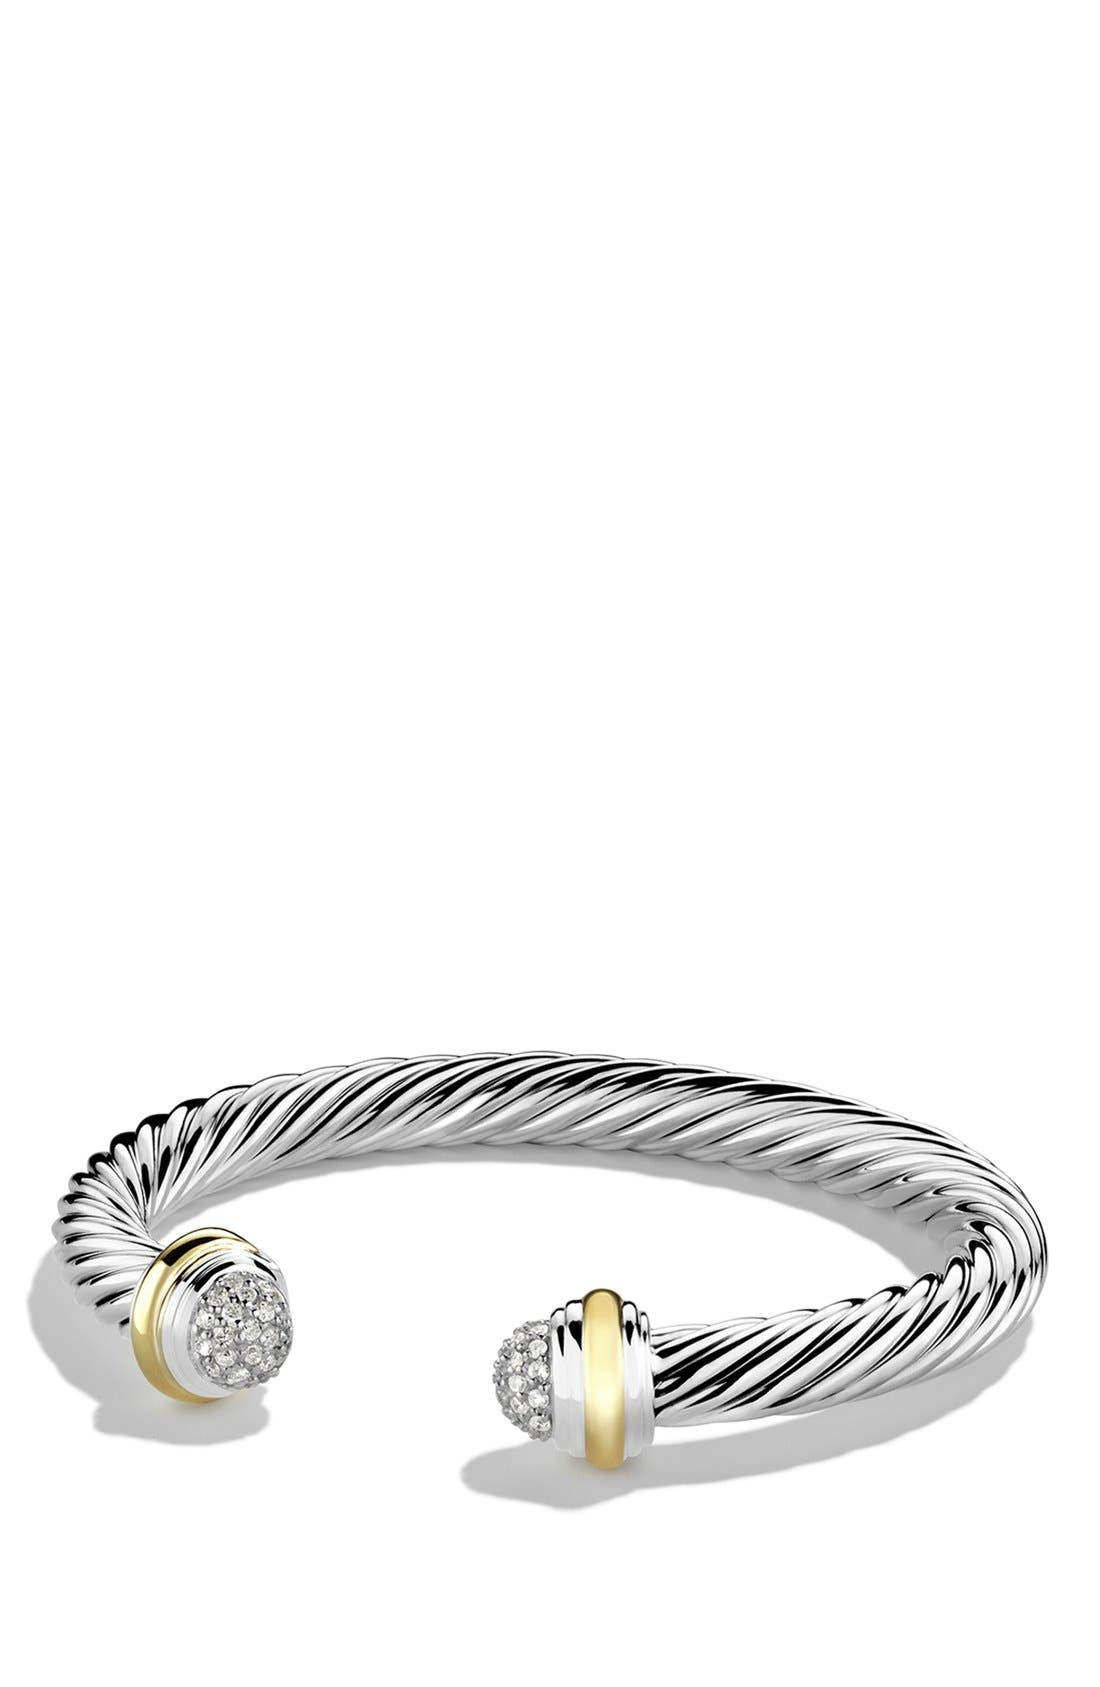 DAVID YURMAN Cable Classics Bracelet with Diamonds and 18K Gold, 7mm, Main, color, DIAMOND